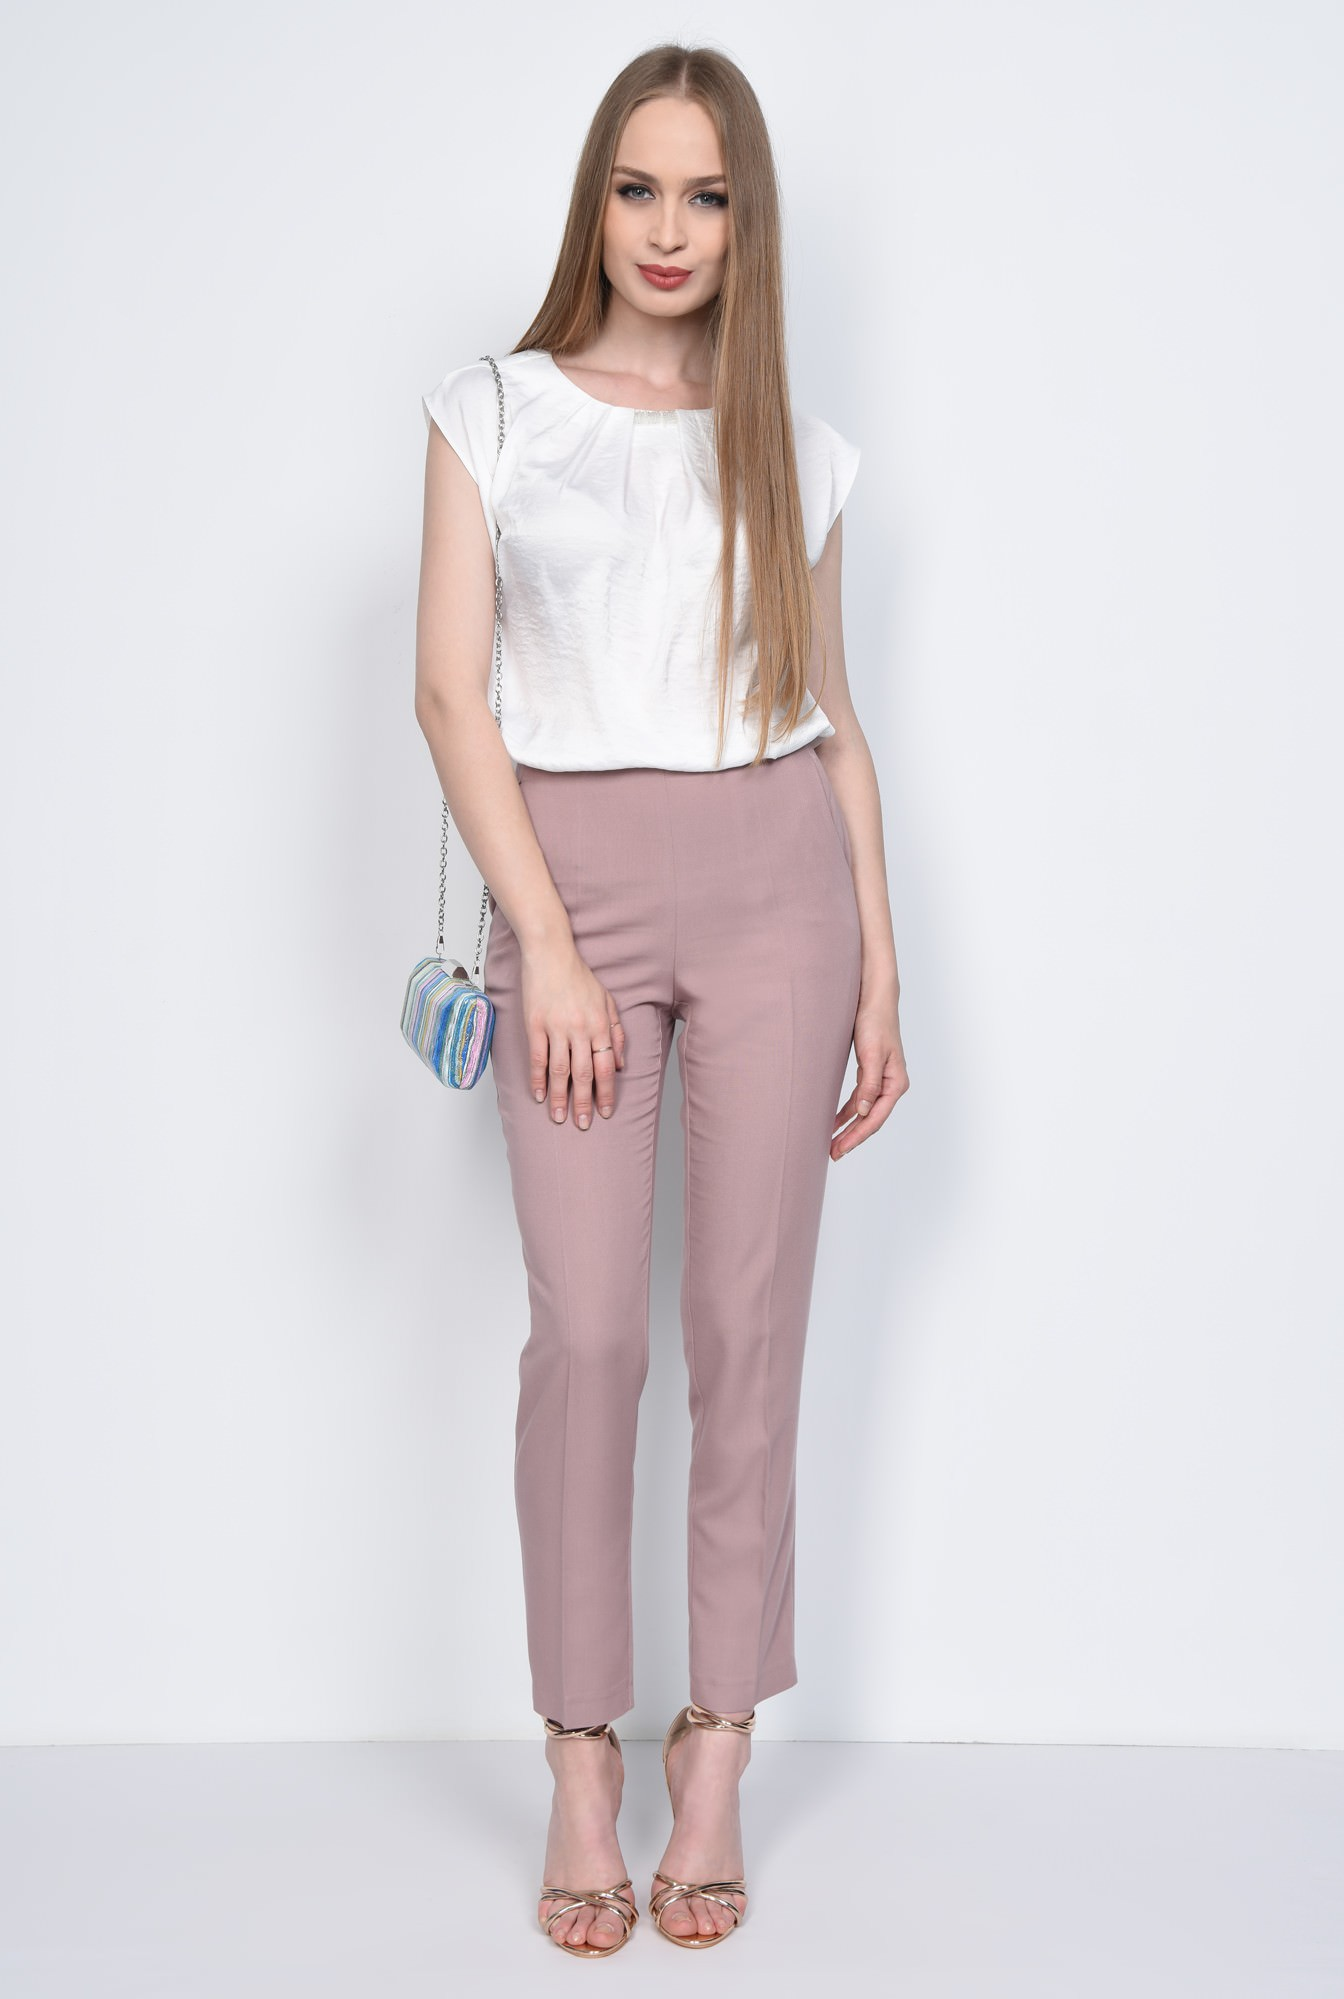 3 - PANTALON CASUAL CONIC PT 152-BEJ